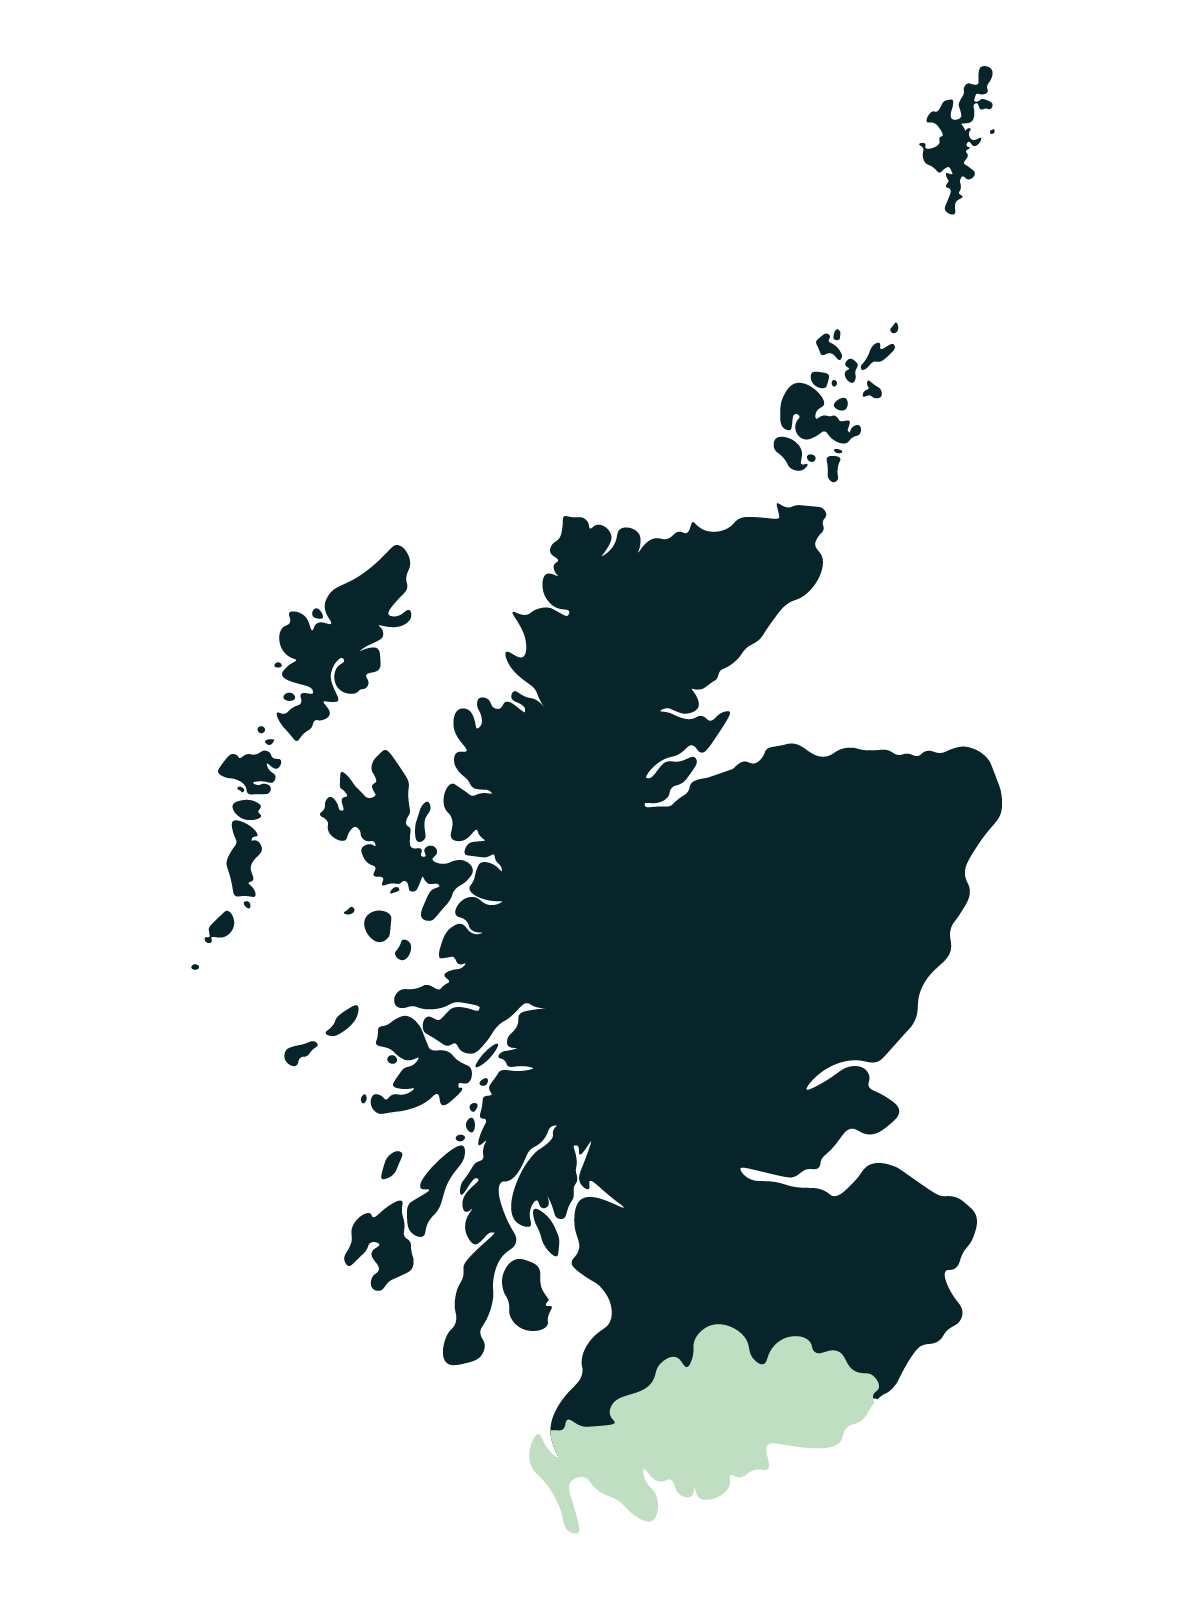 Dumfries & Galloway map